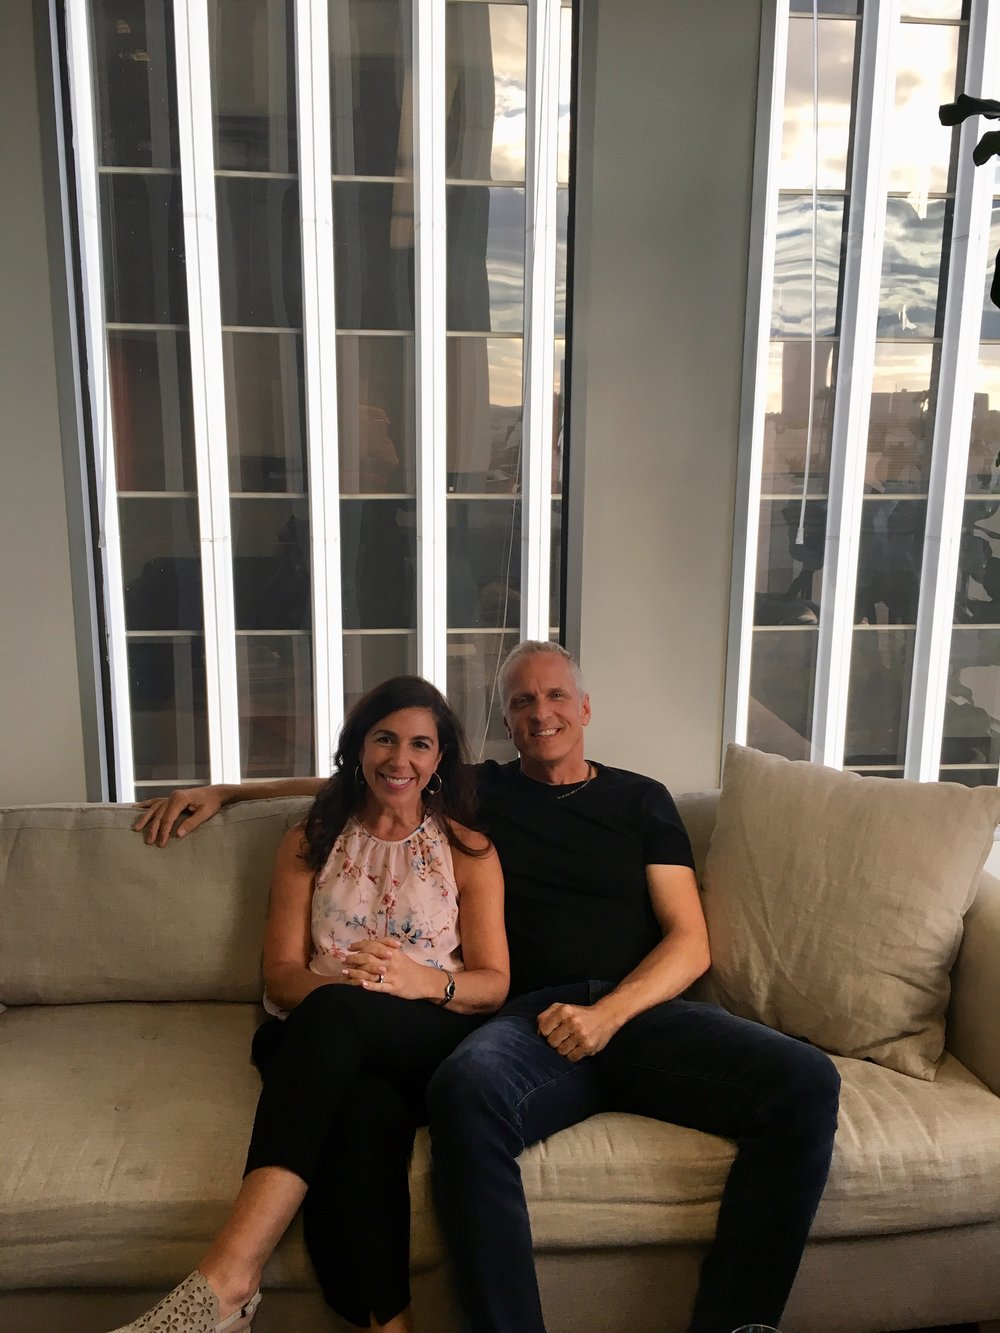 Patrick Fabian and Kara SIT SMILE.jpg